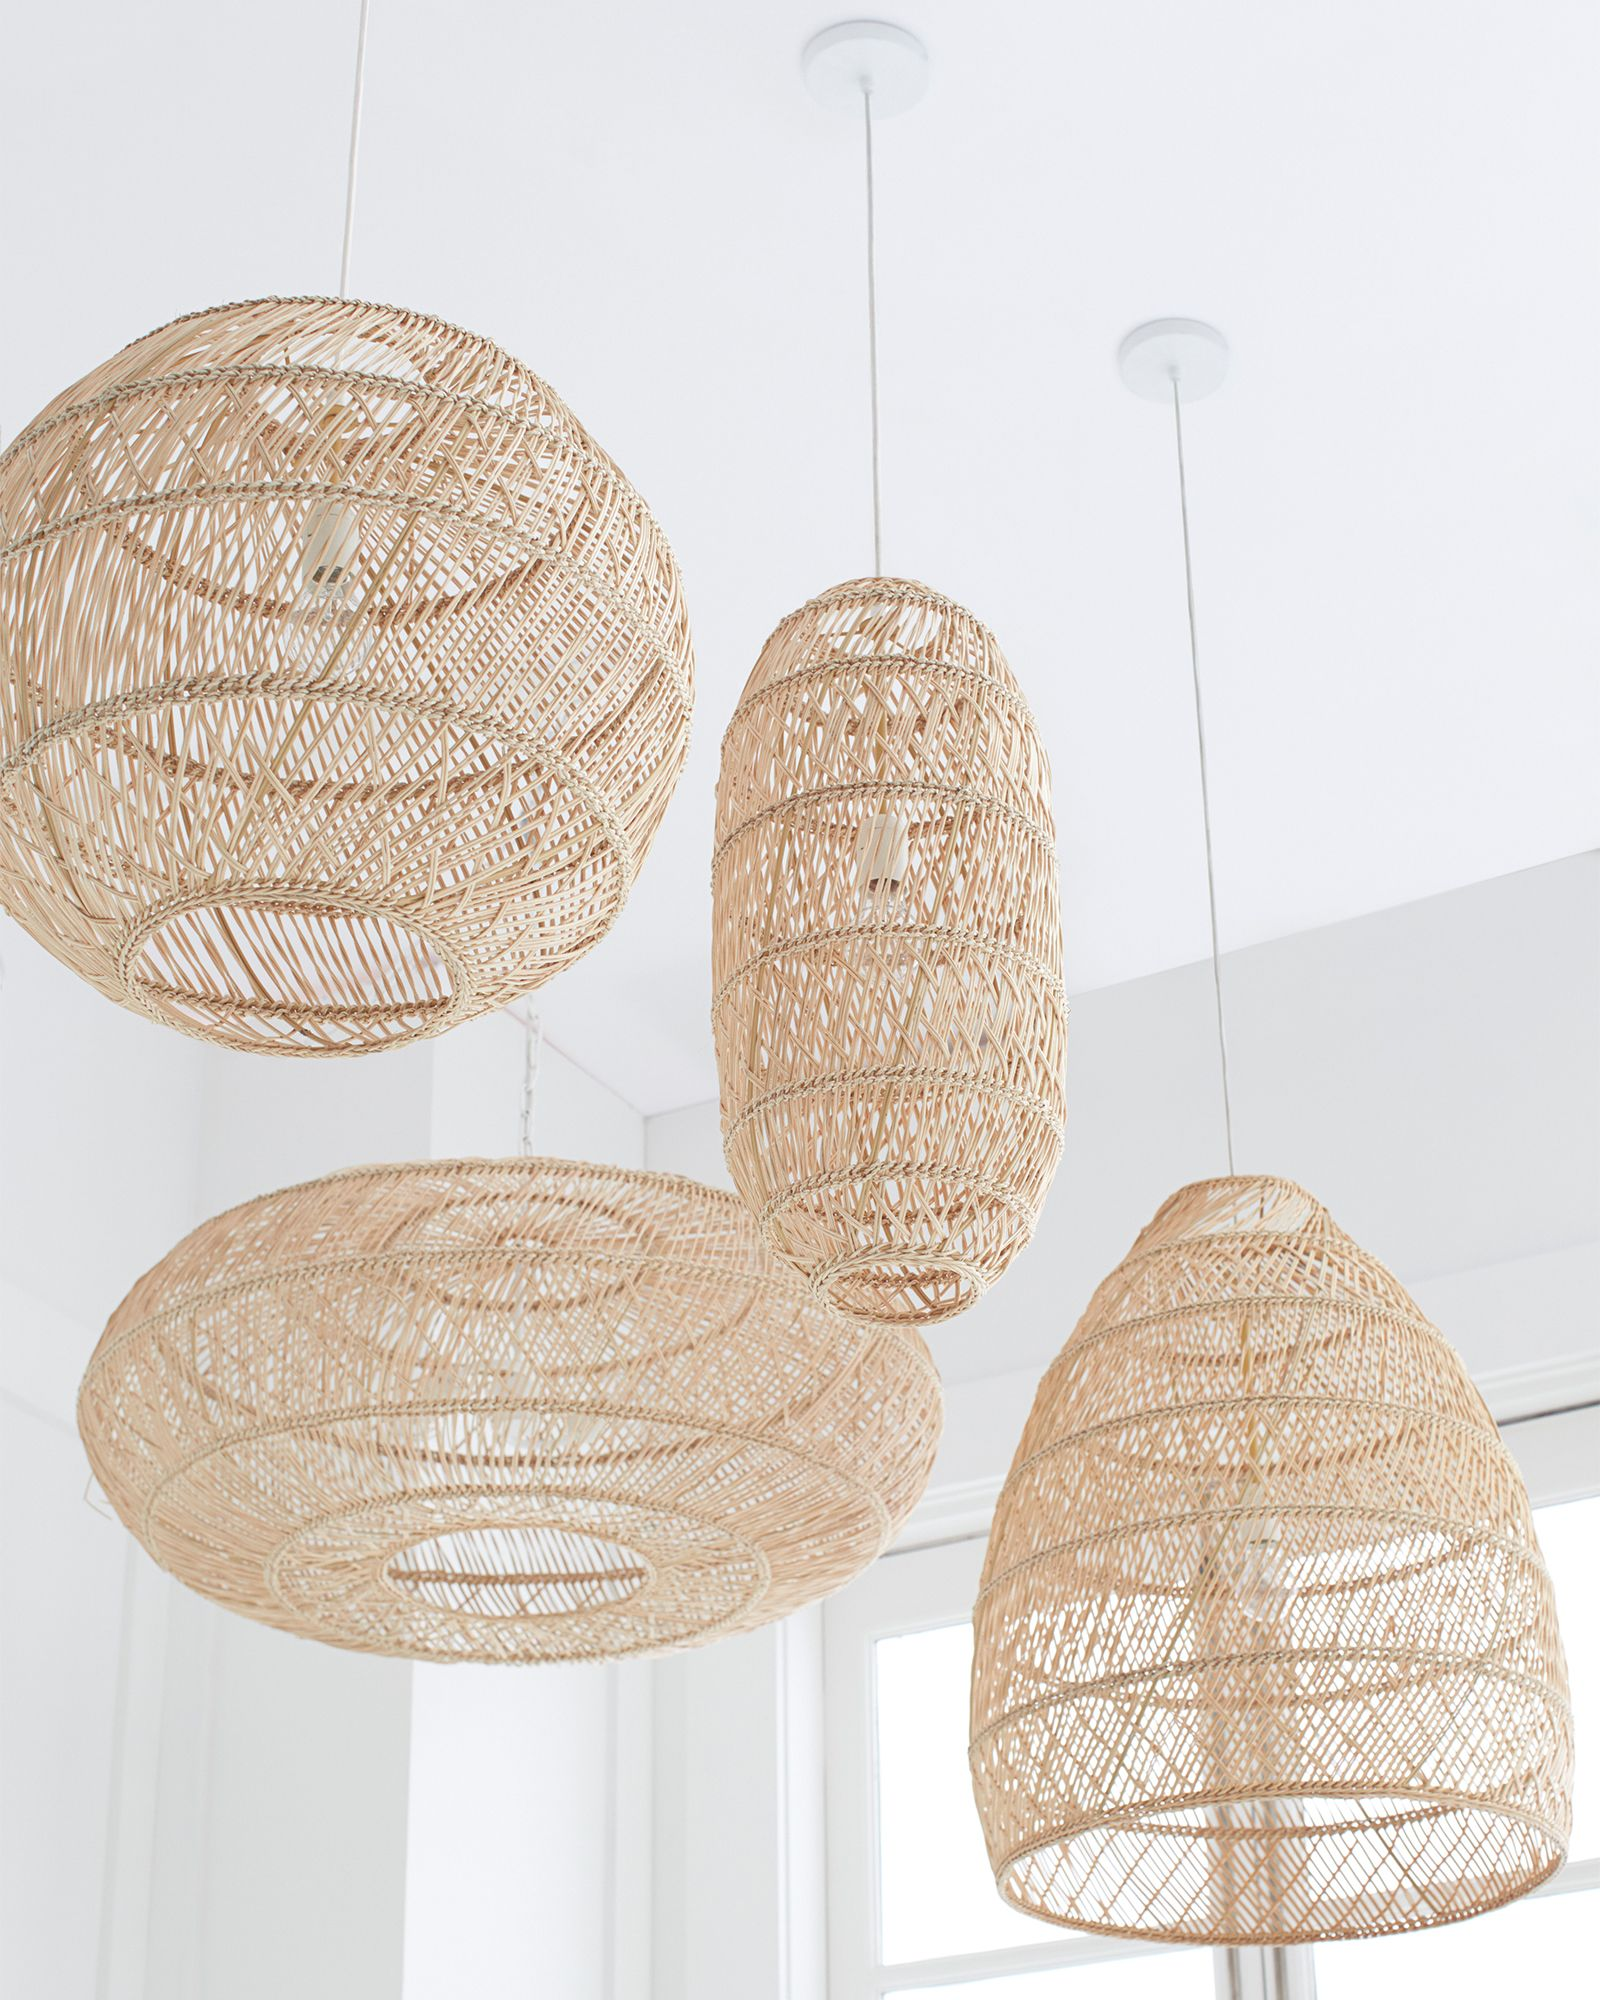 Headlands Oblong Pendantheadlands Oblong Pendant Boho Lighting Open Weave Pendant Contemporary Pendant Lights